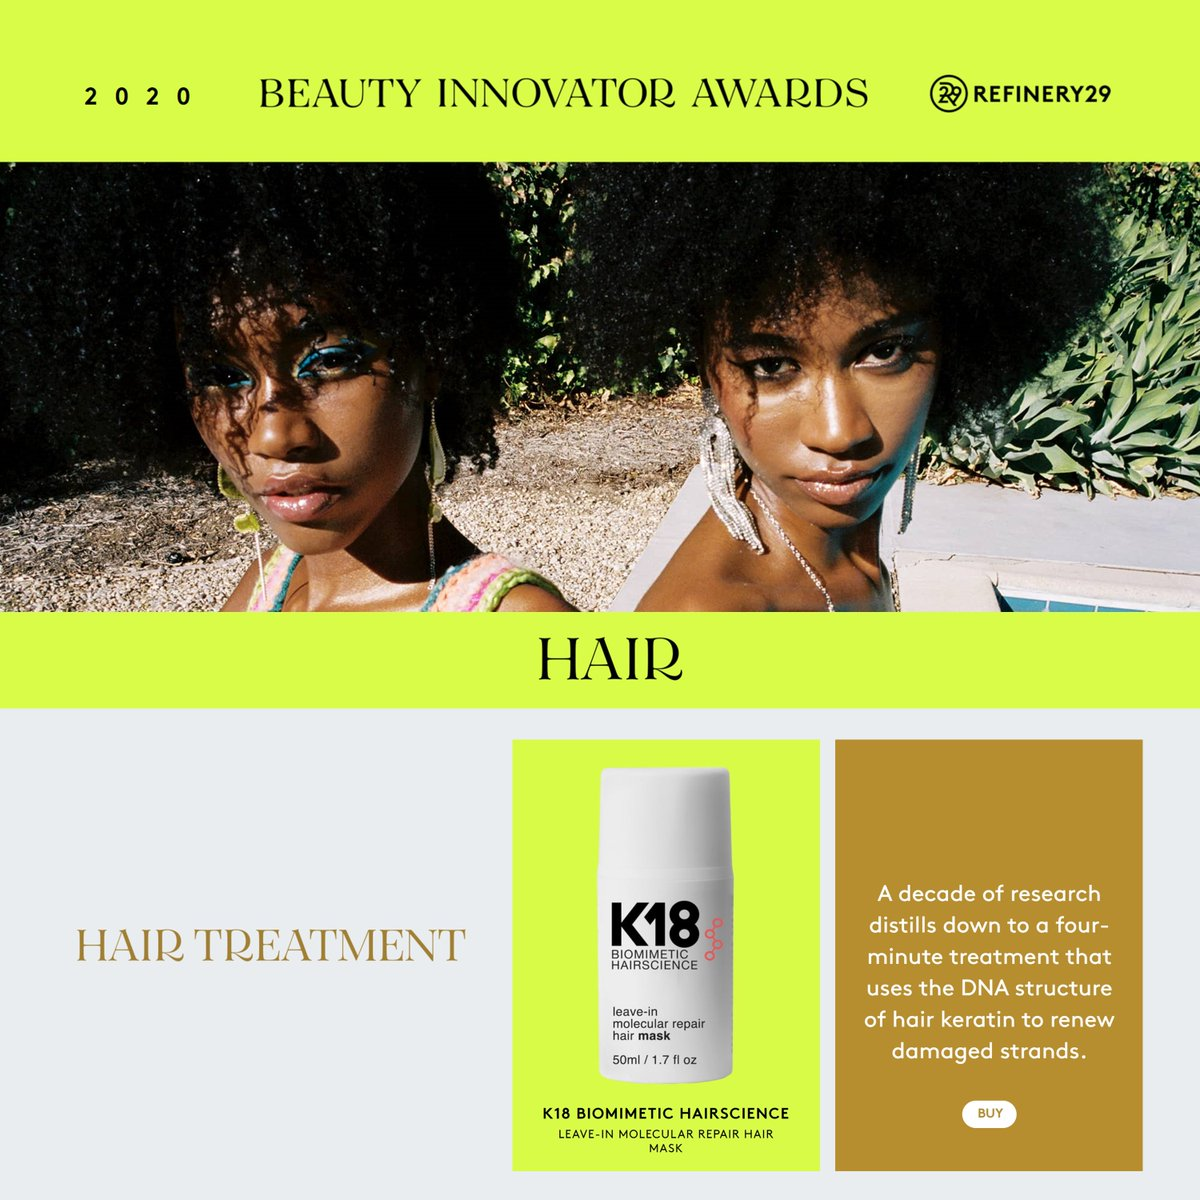 Innovation is at the core of who we are- it's an honor to be awarded the @refinery29  BEST HAIR TREATMENT BEAUTY INNOVATOR AWARD for our Leave-In Molecular Hair Repair Mask.